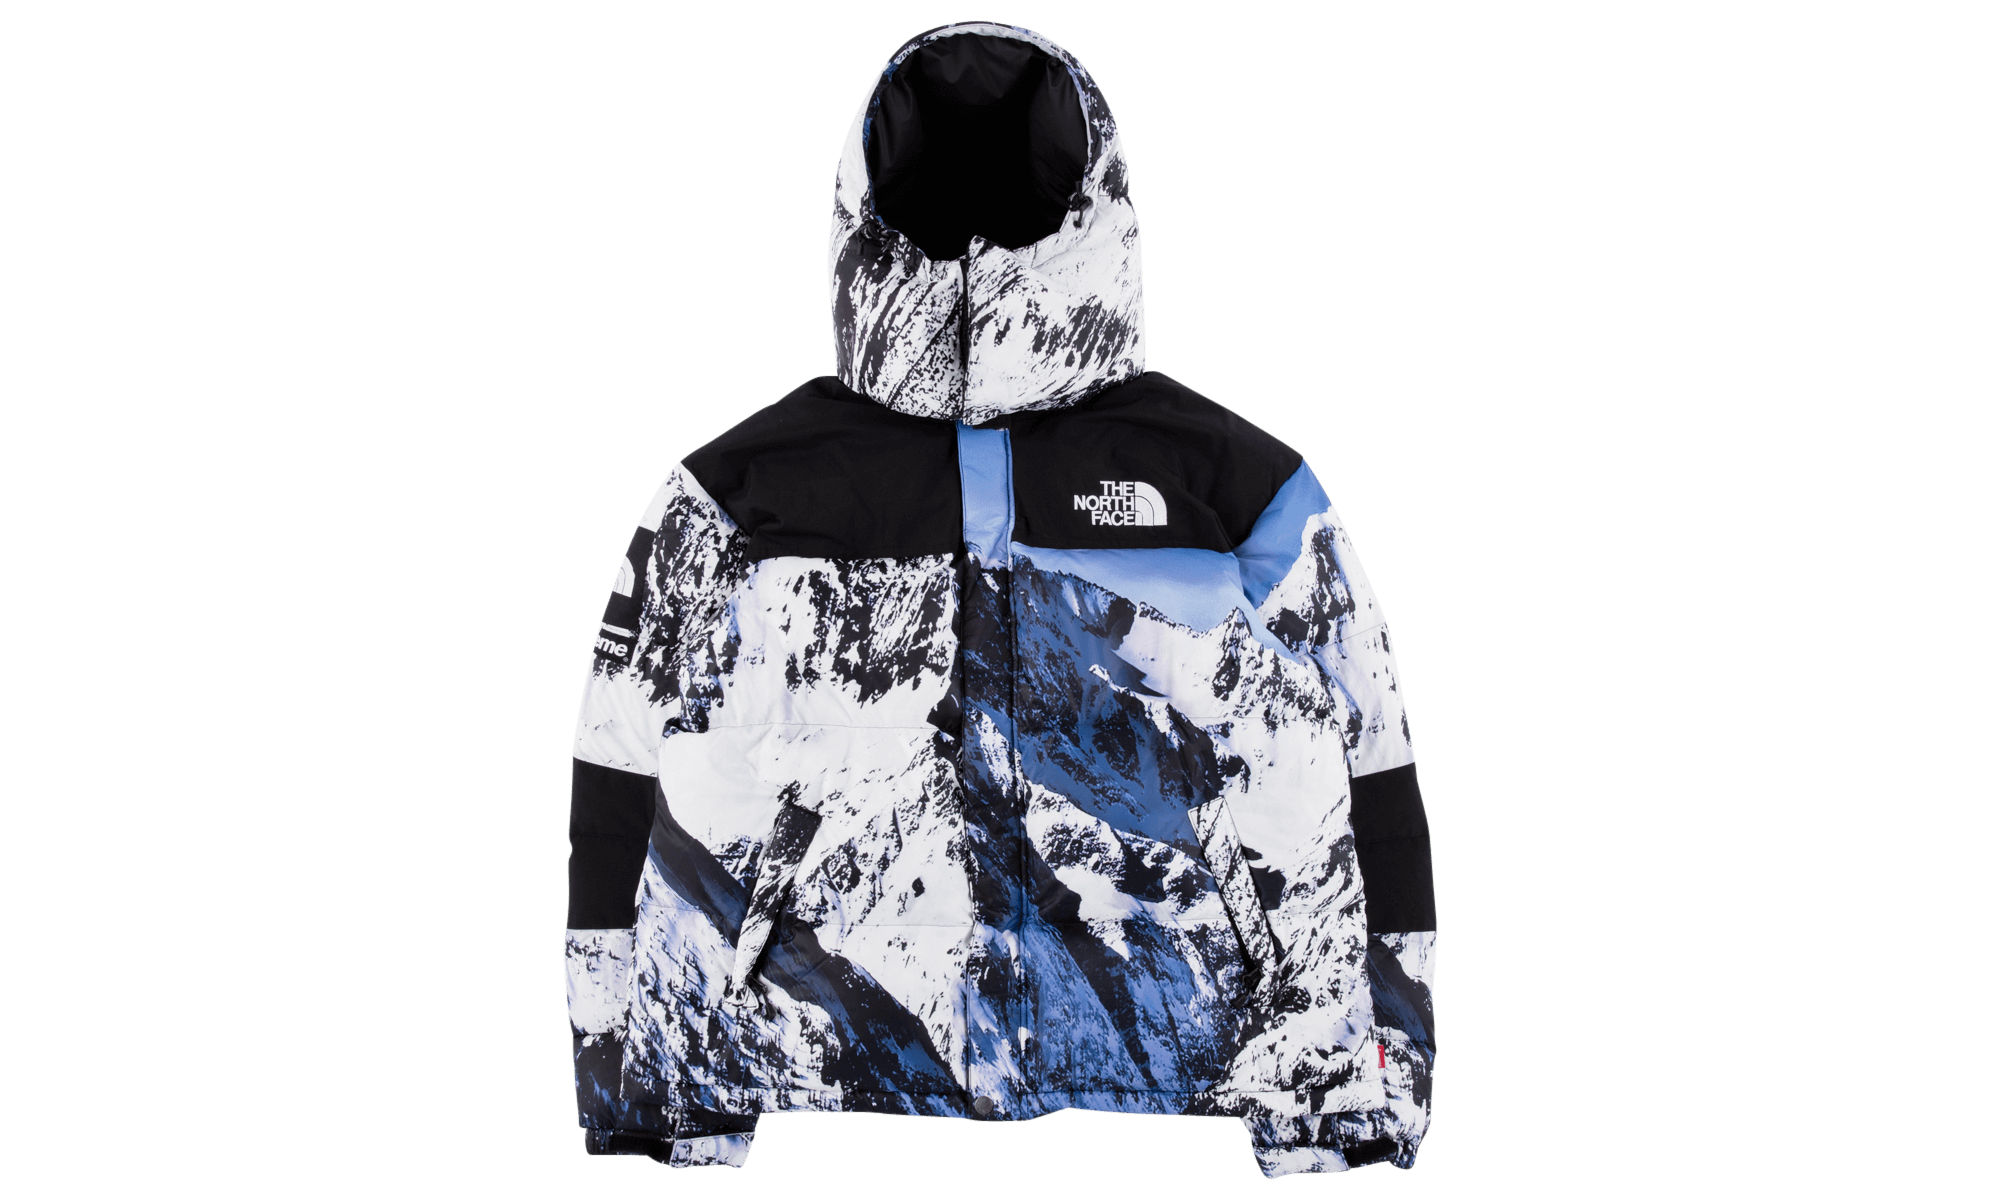 The North Face X Supreme Mountain Baltoro Jacket Is A Highly Sought After Piece From The Ongoing Collaboration Between The Premium Outd Fashion Street Wear Tnf